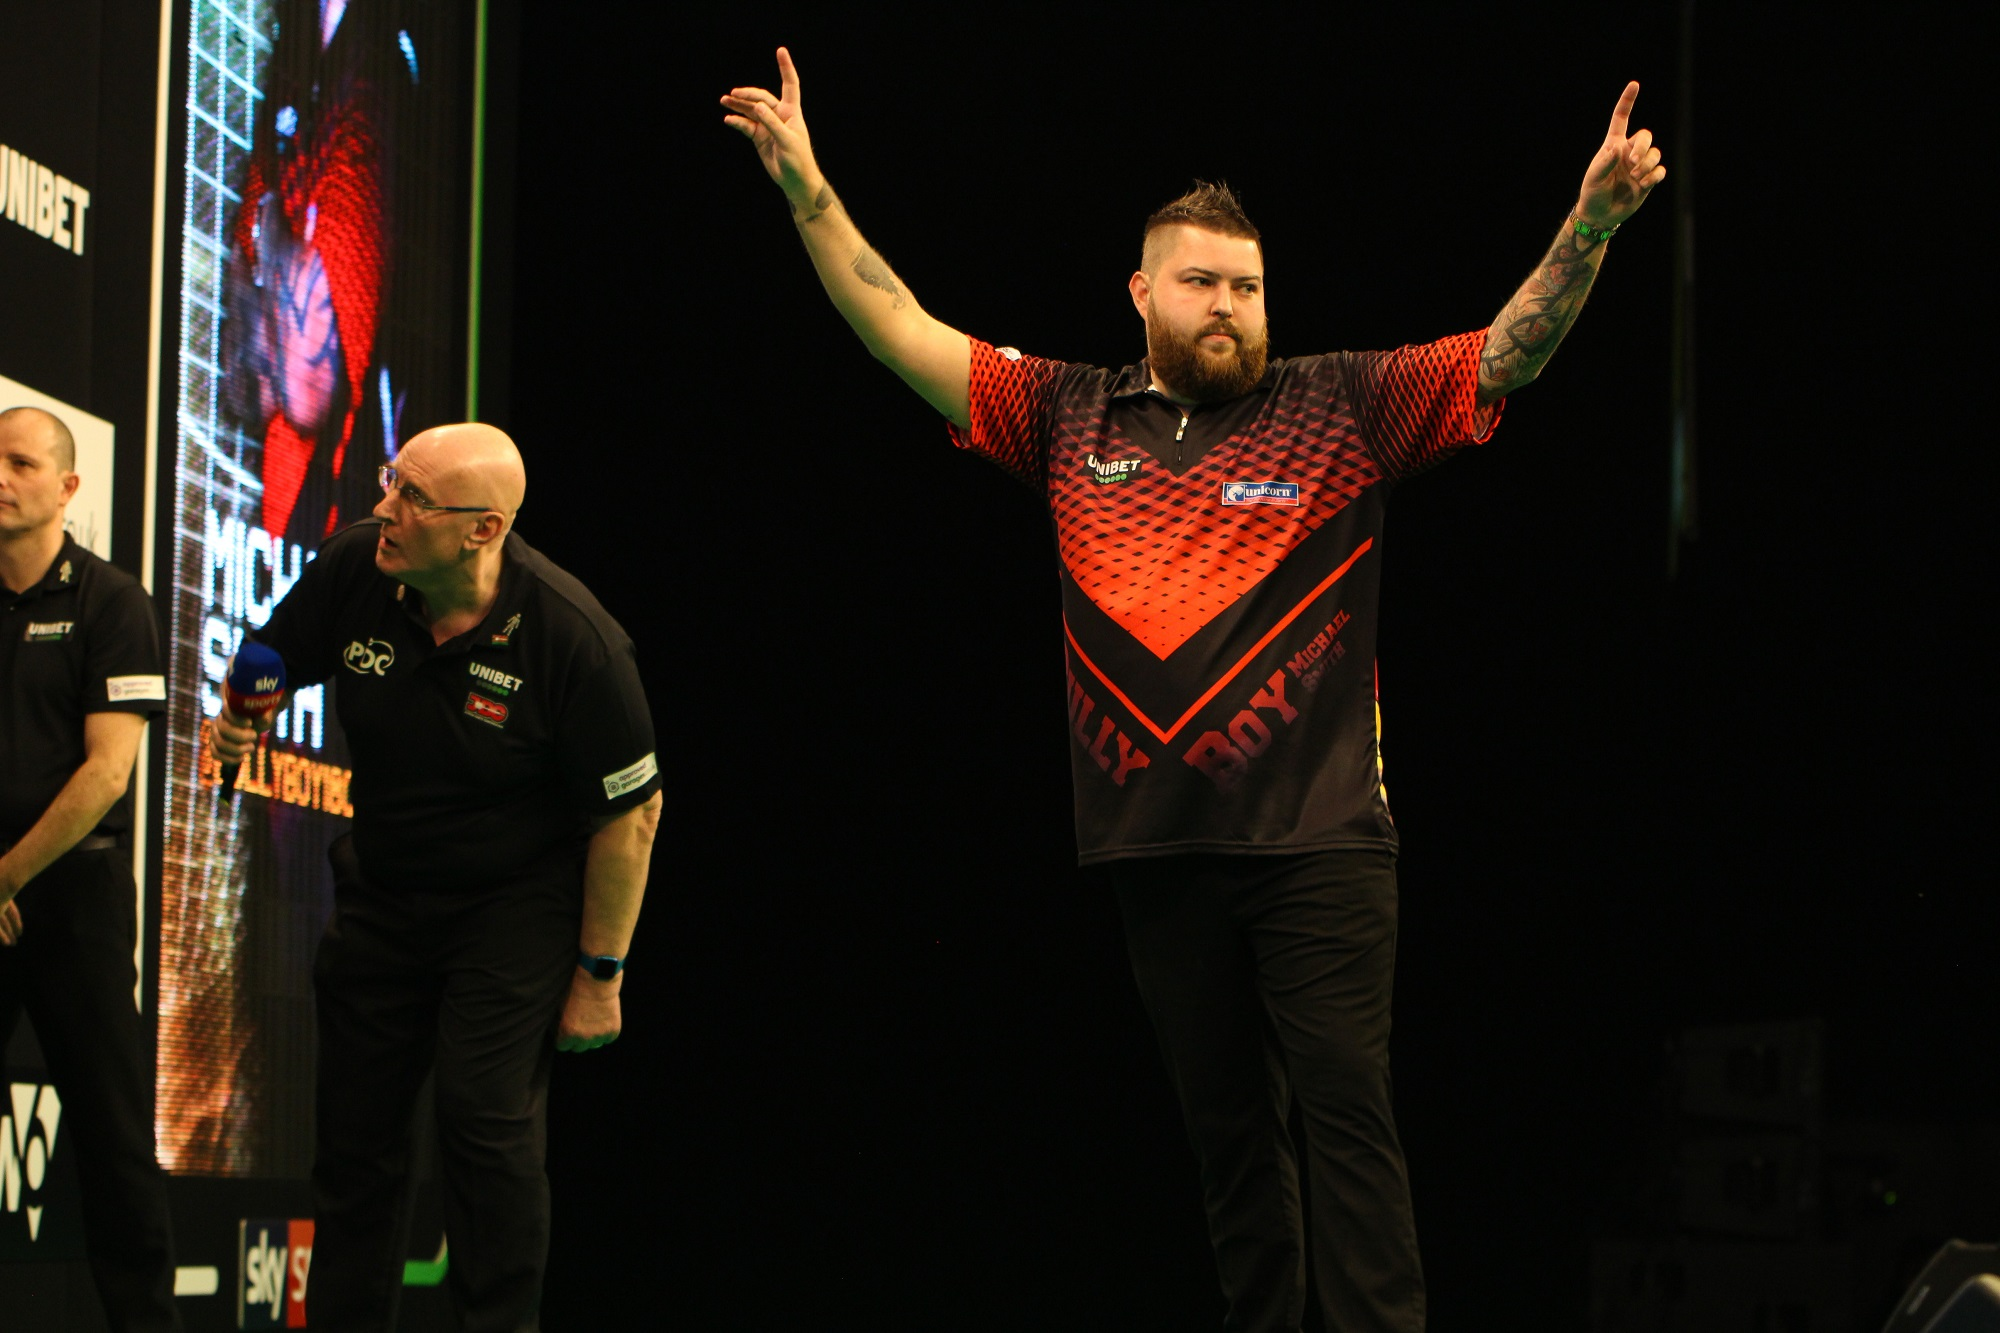 Sensational Smith lands Dublin 9-darter!